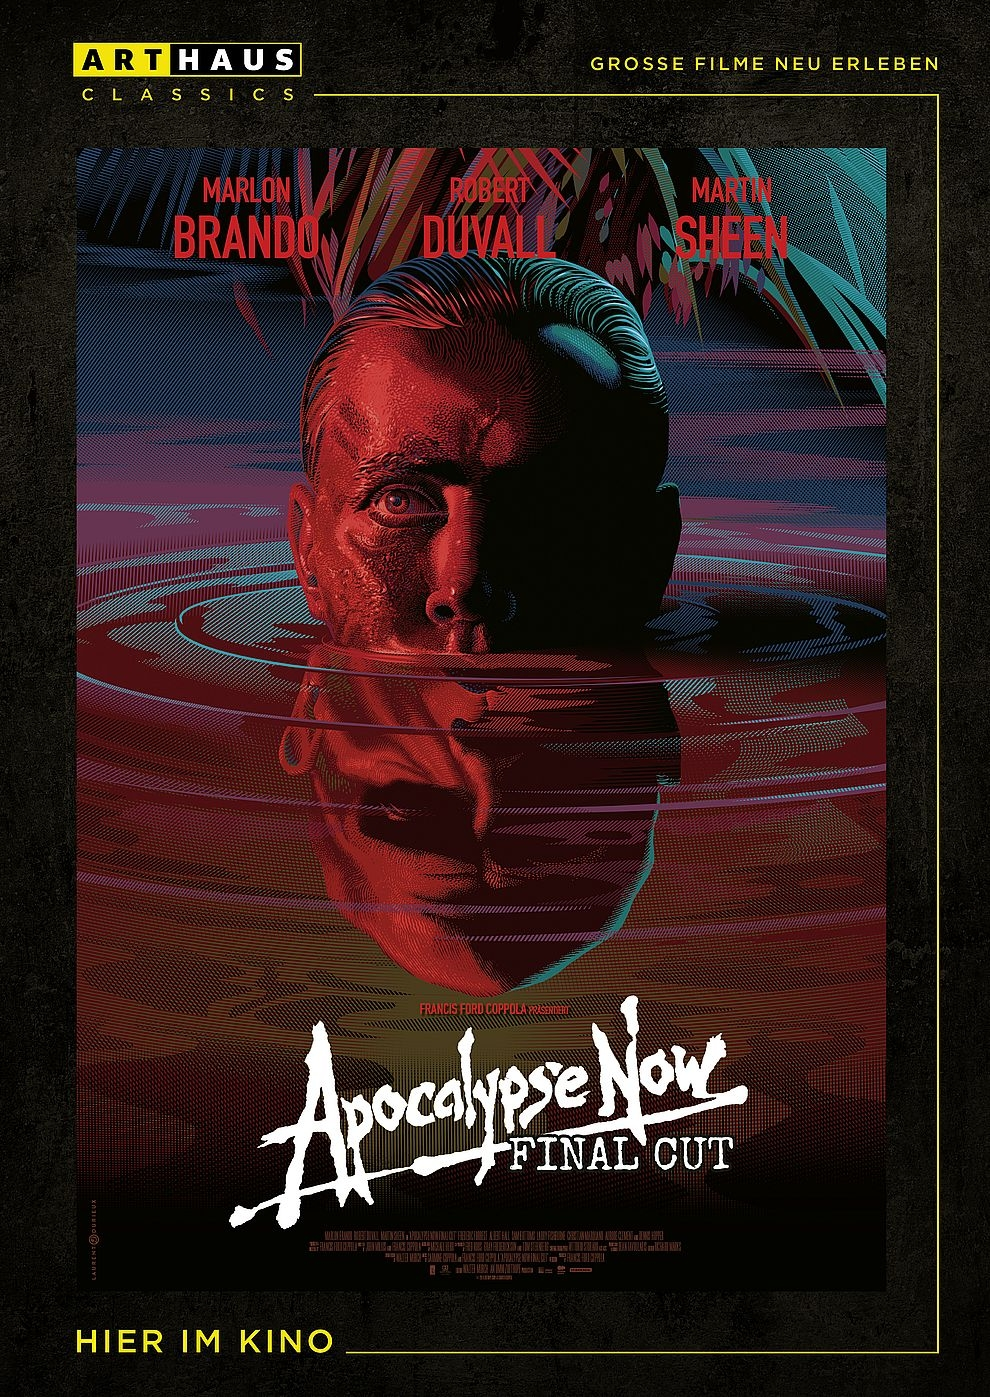 Apocalypse Now - Final Cut (Poster)